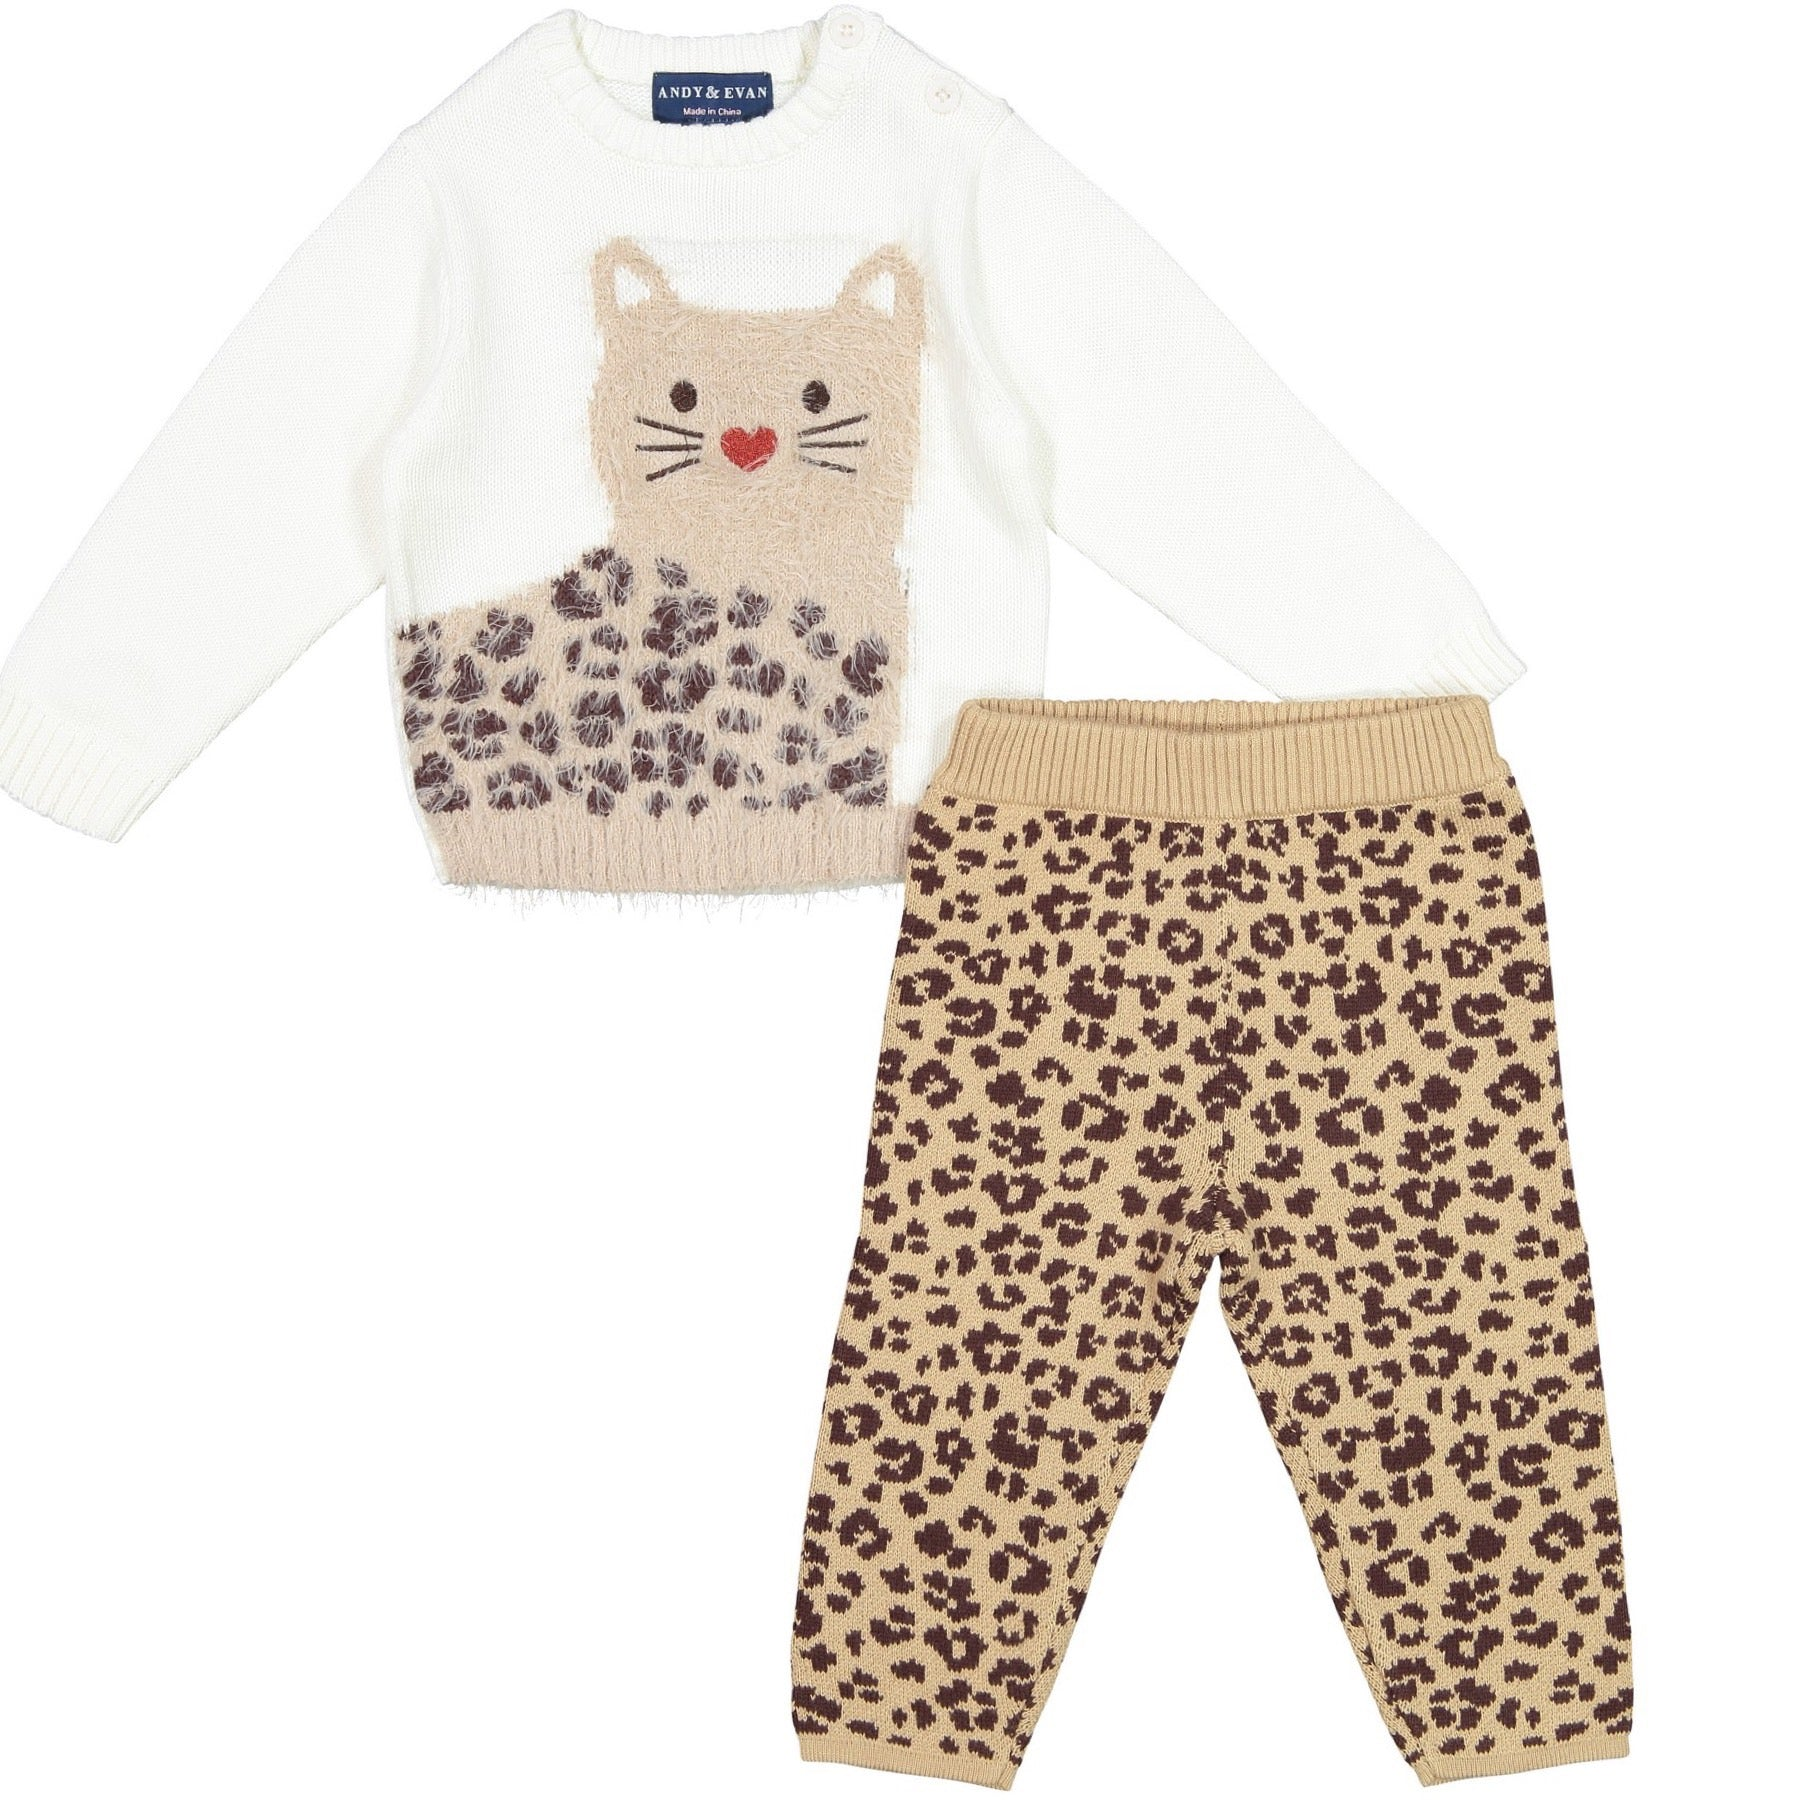 Cheetah Baby Chic Set